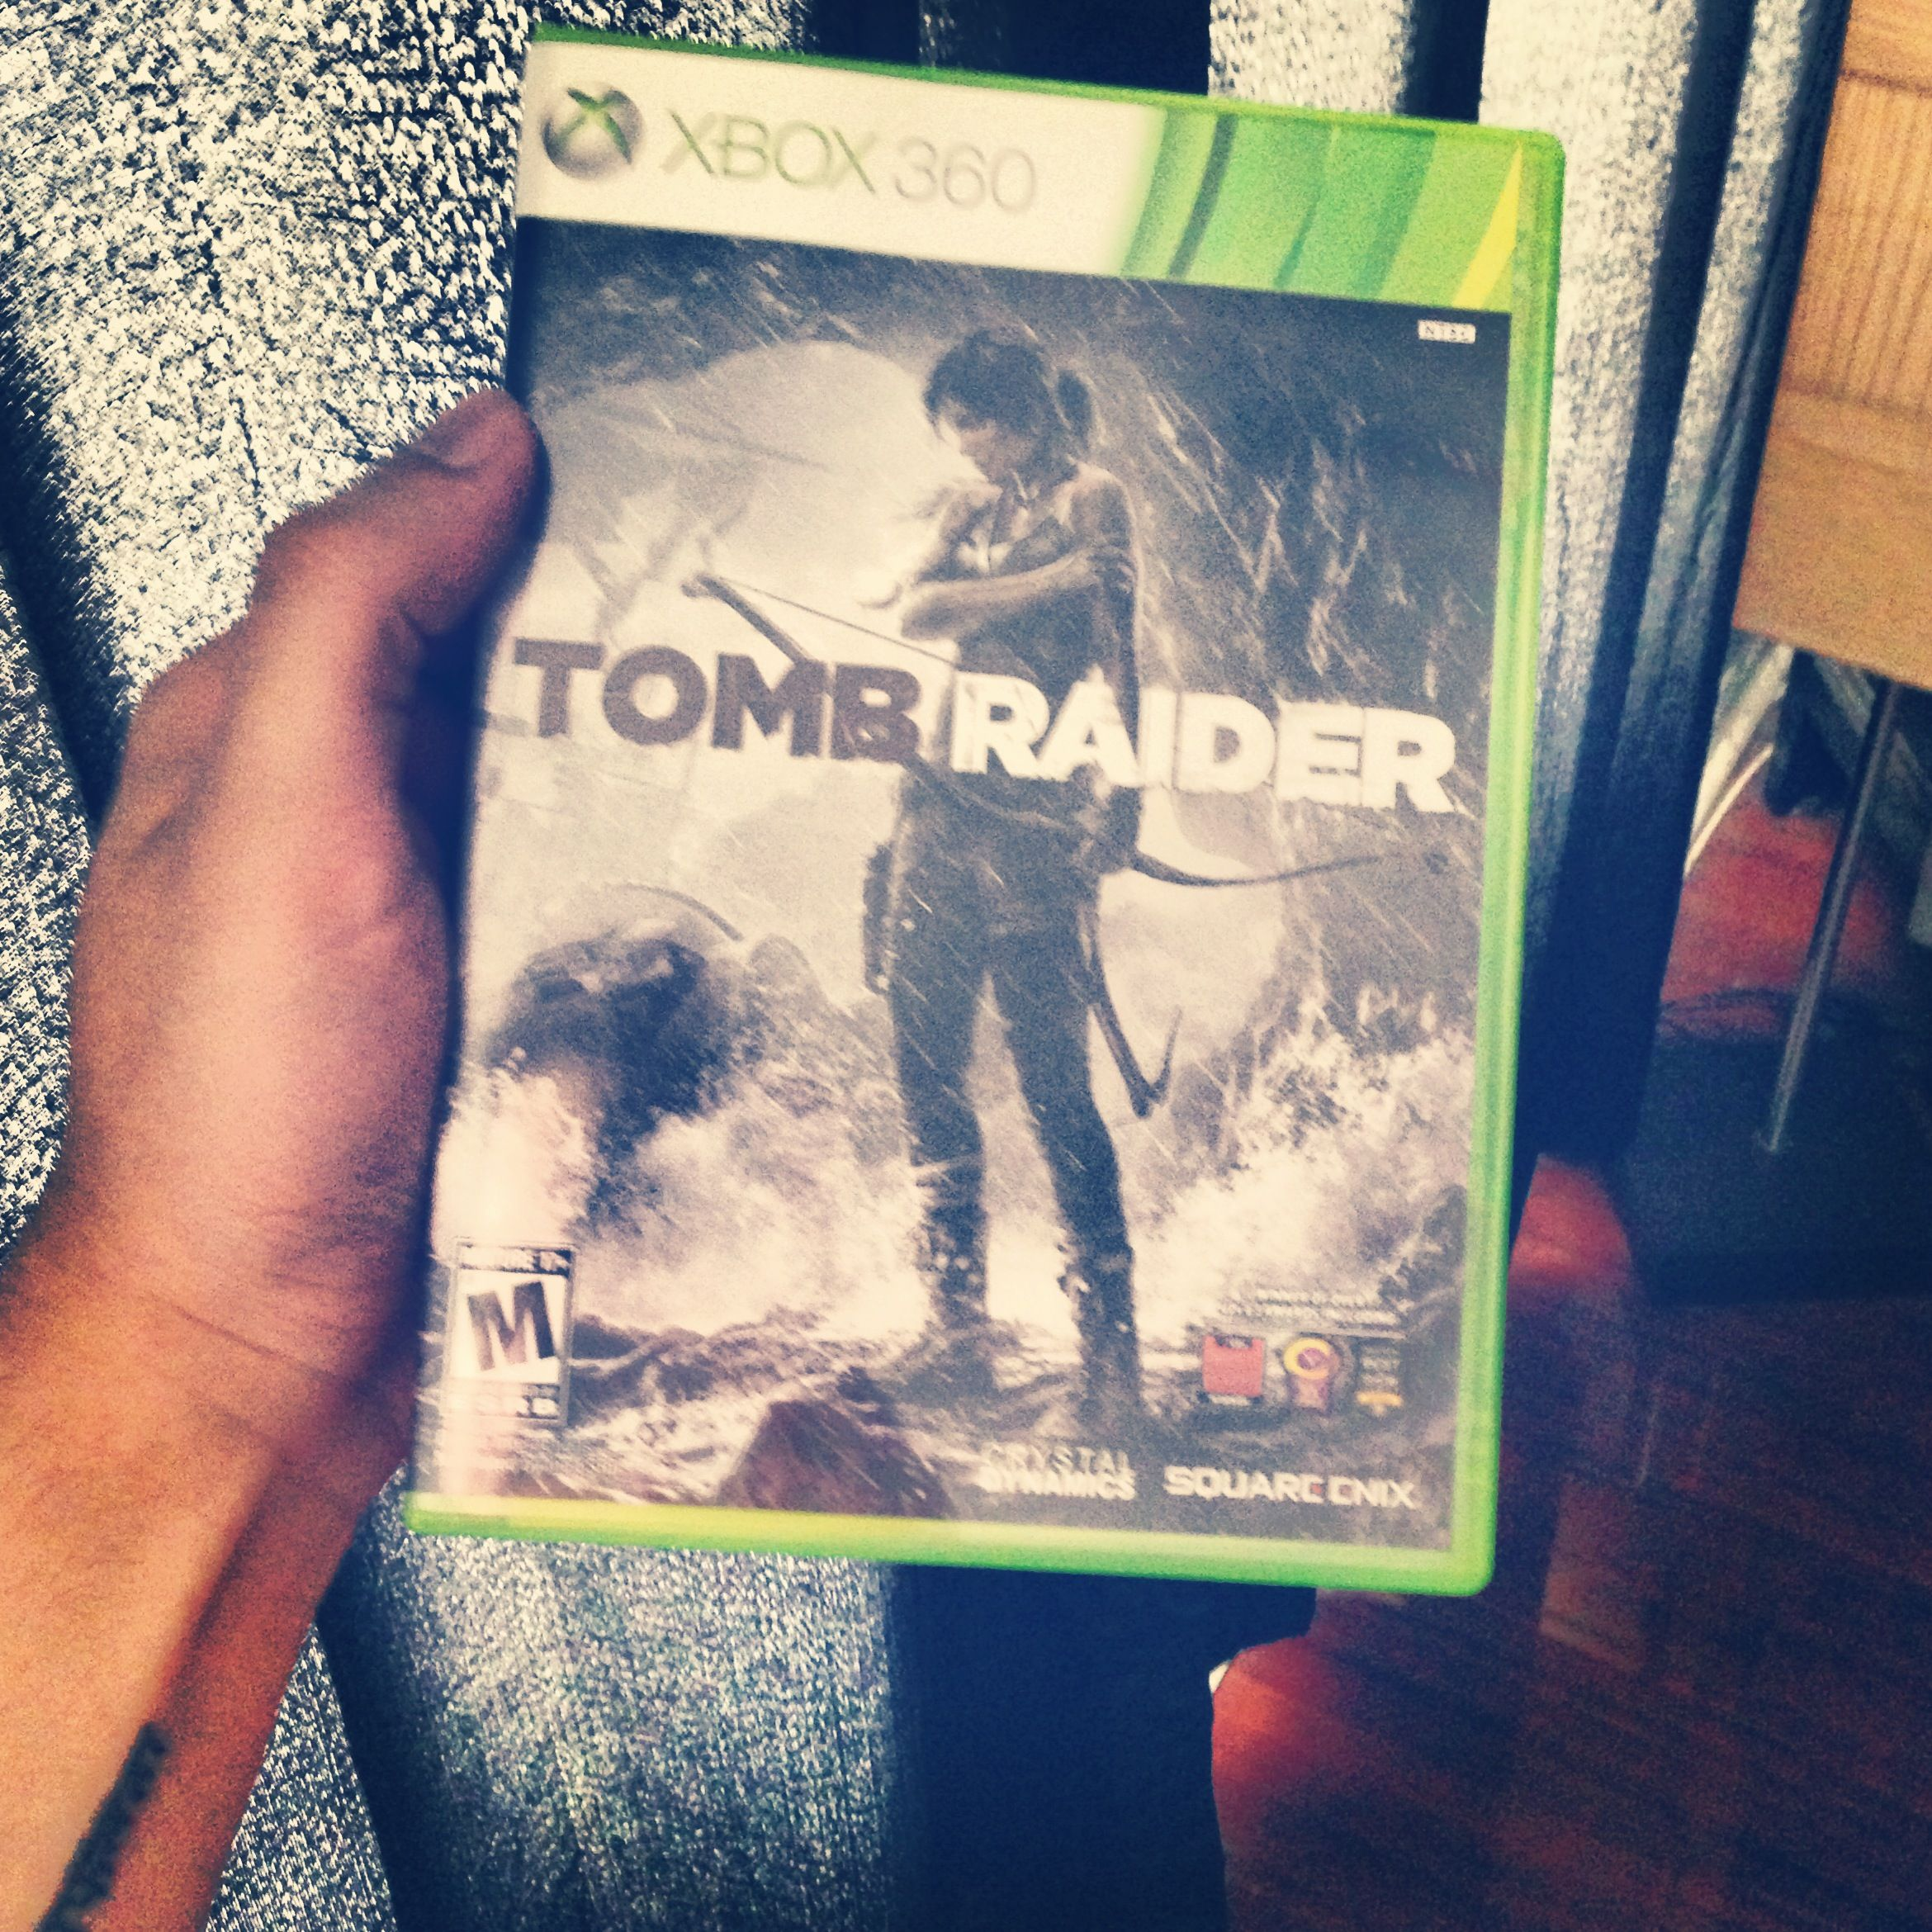 Going to be playing this alllll dayyy. :D  #TombRaider